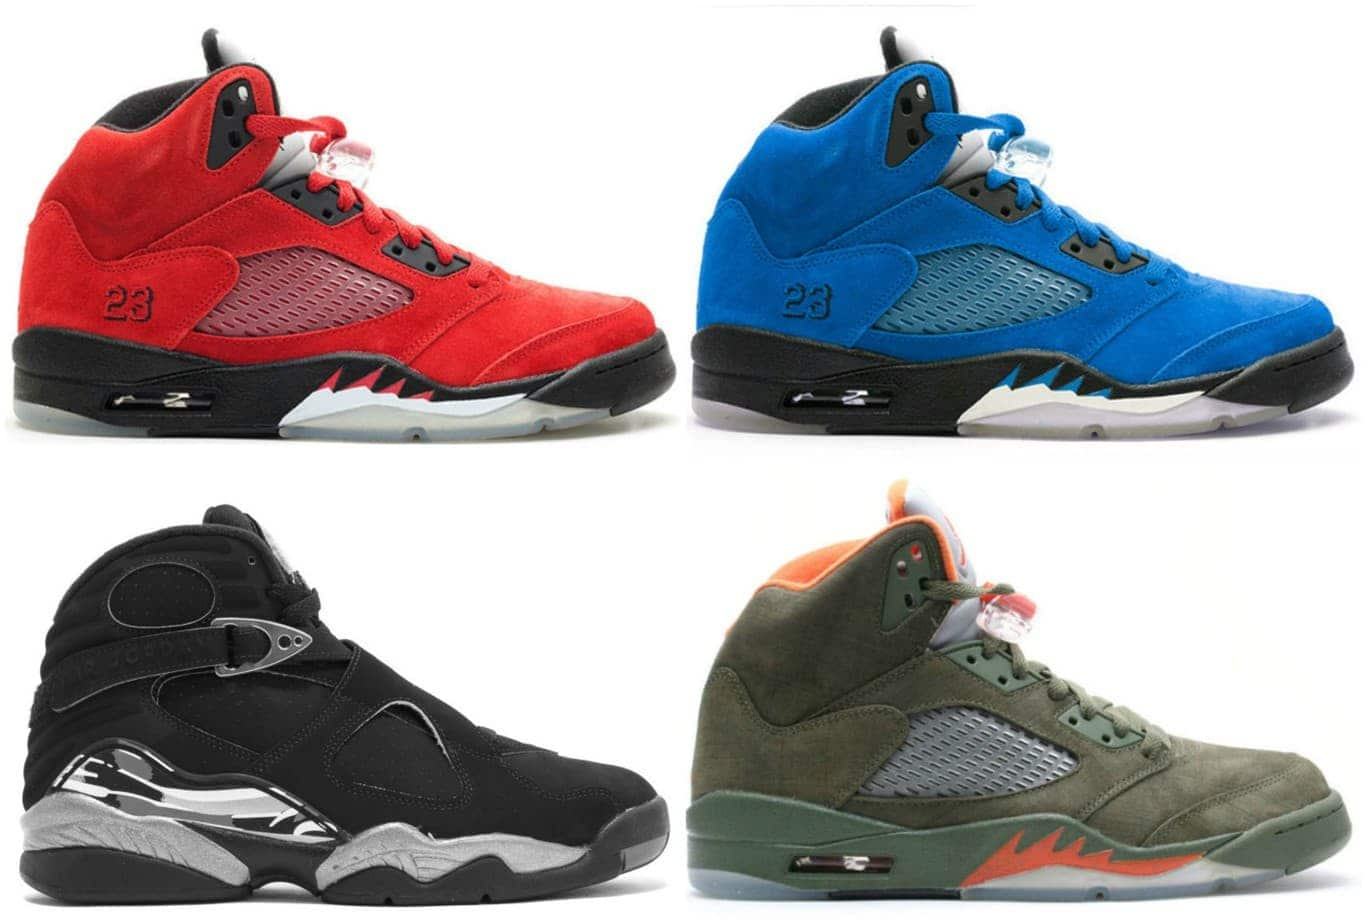 new style da124 55dc1 real air jordan 5 retro raging bull 3m negro varsity rojo ...